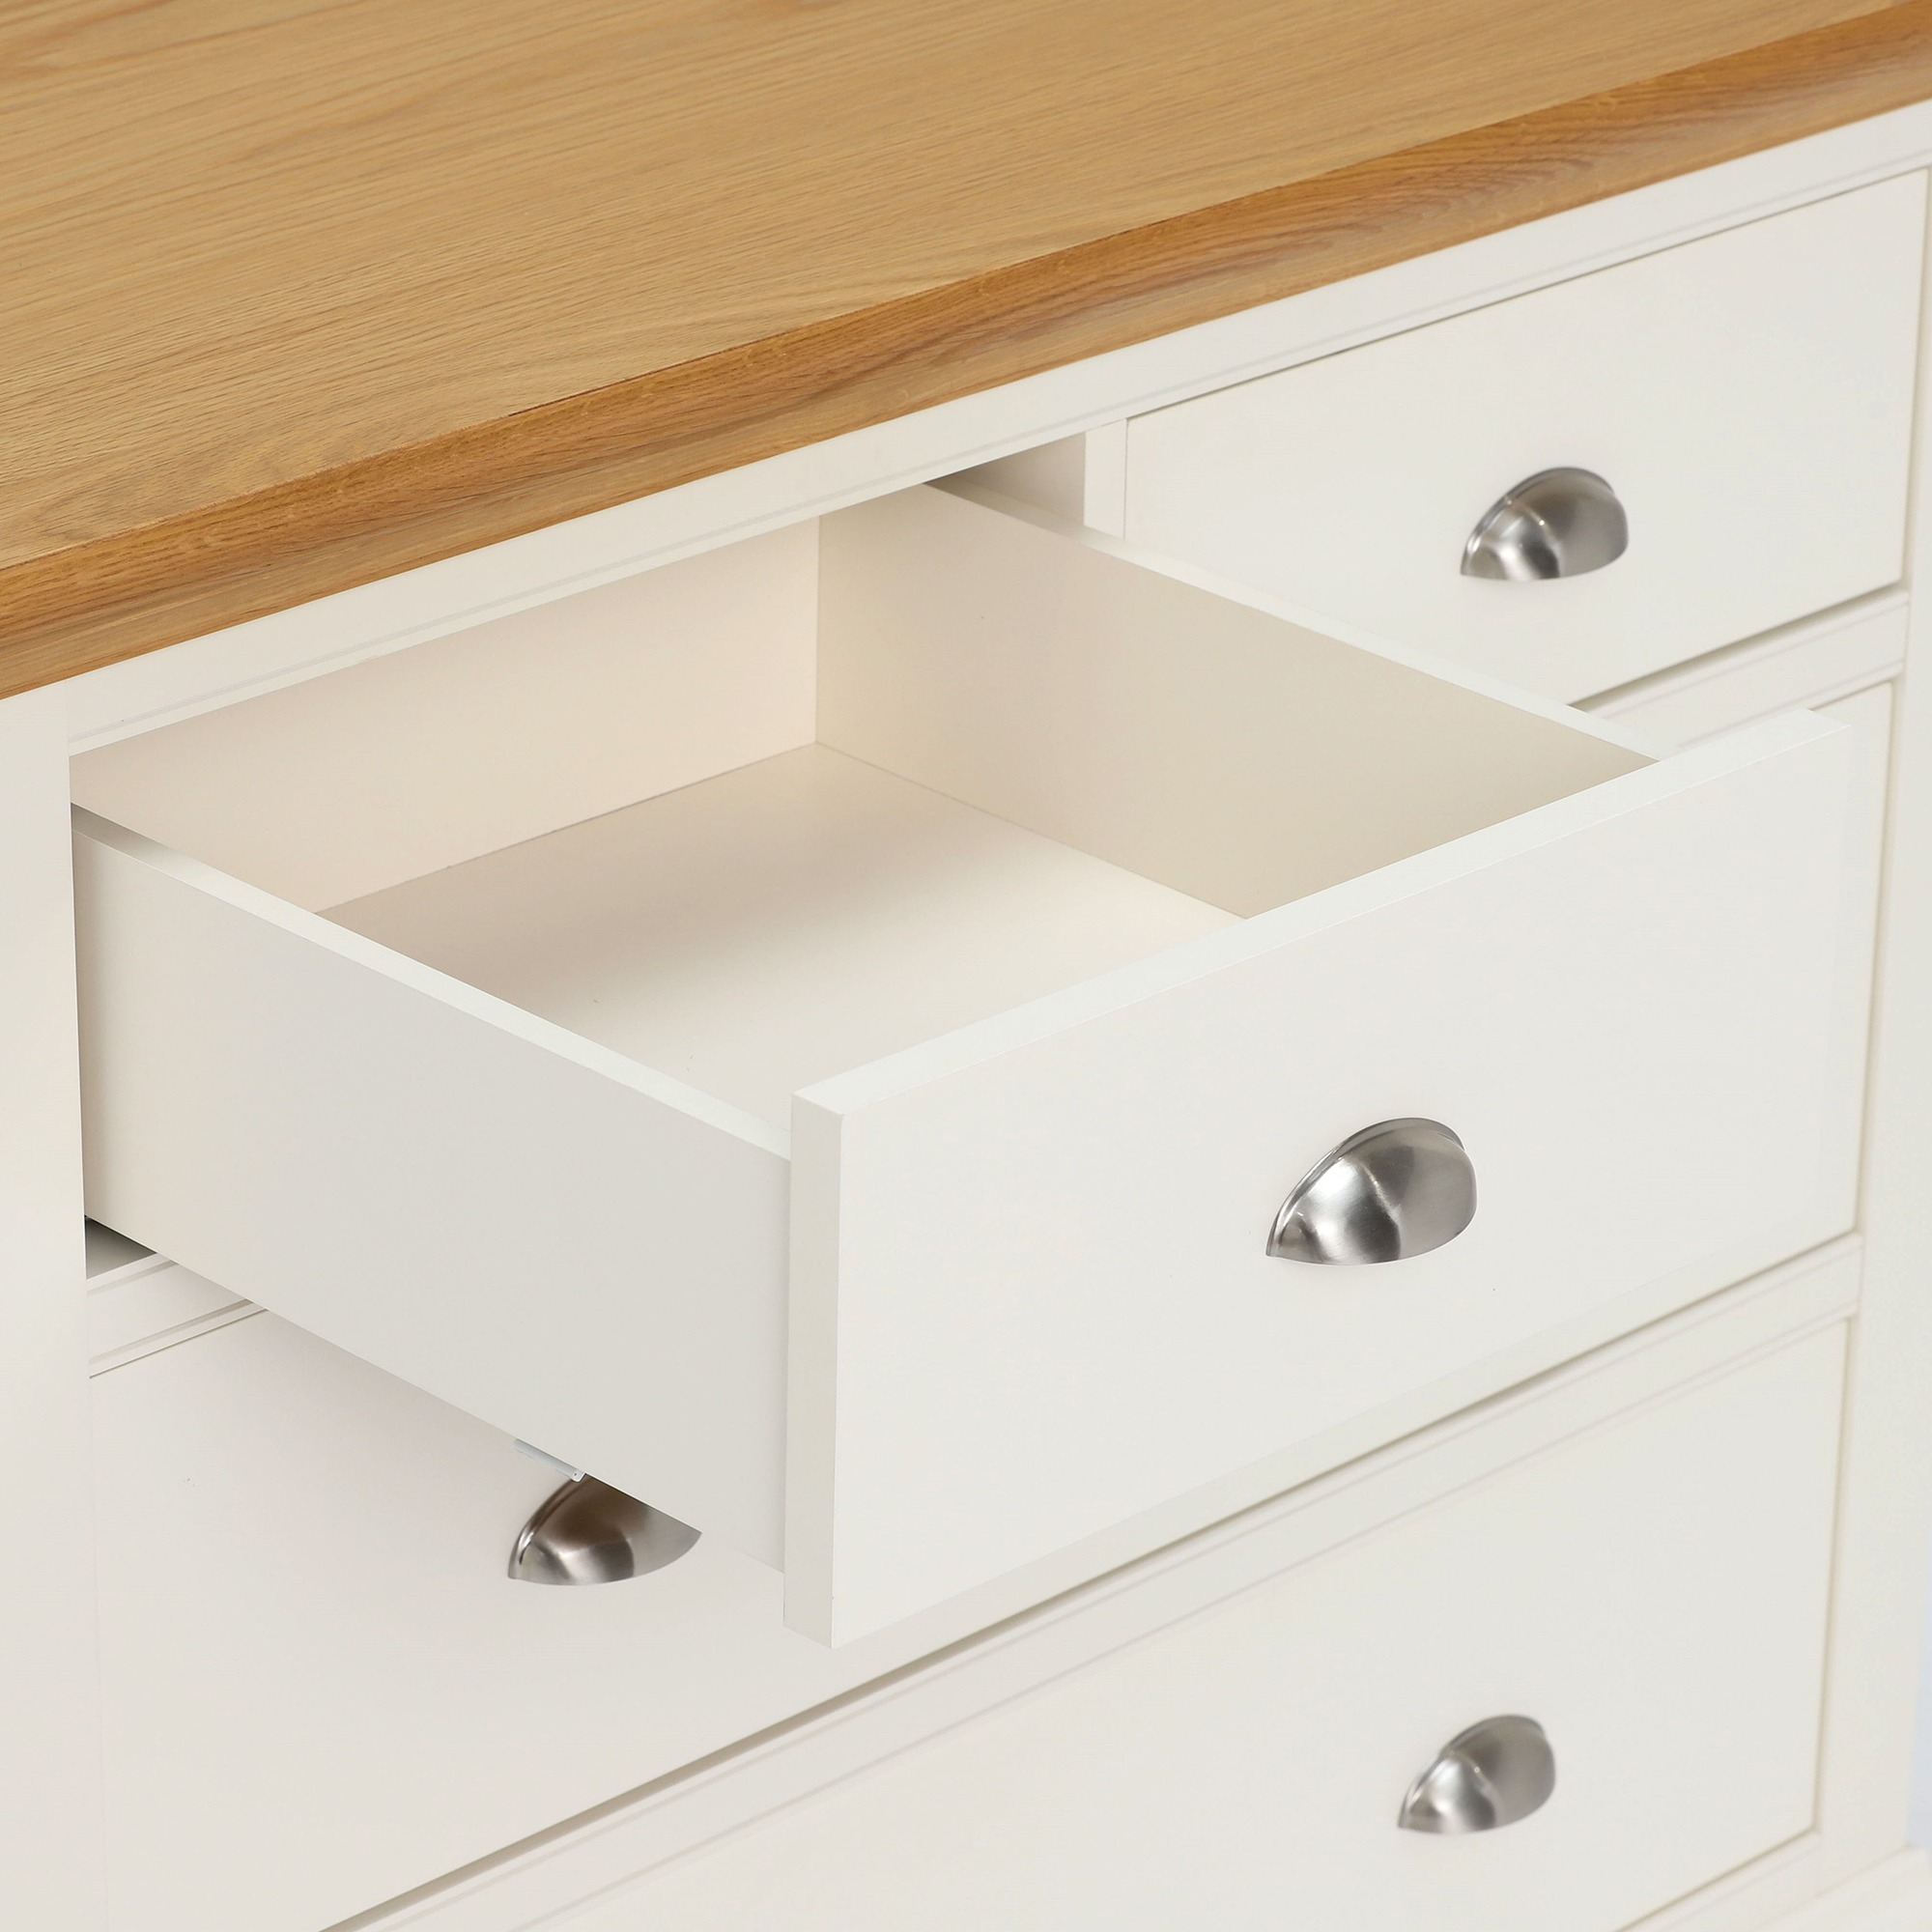 SOFT CLOSING DRAWER DETAIL - CLOSE UP